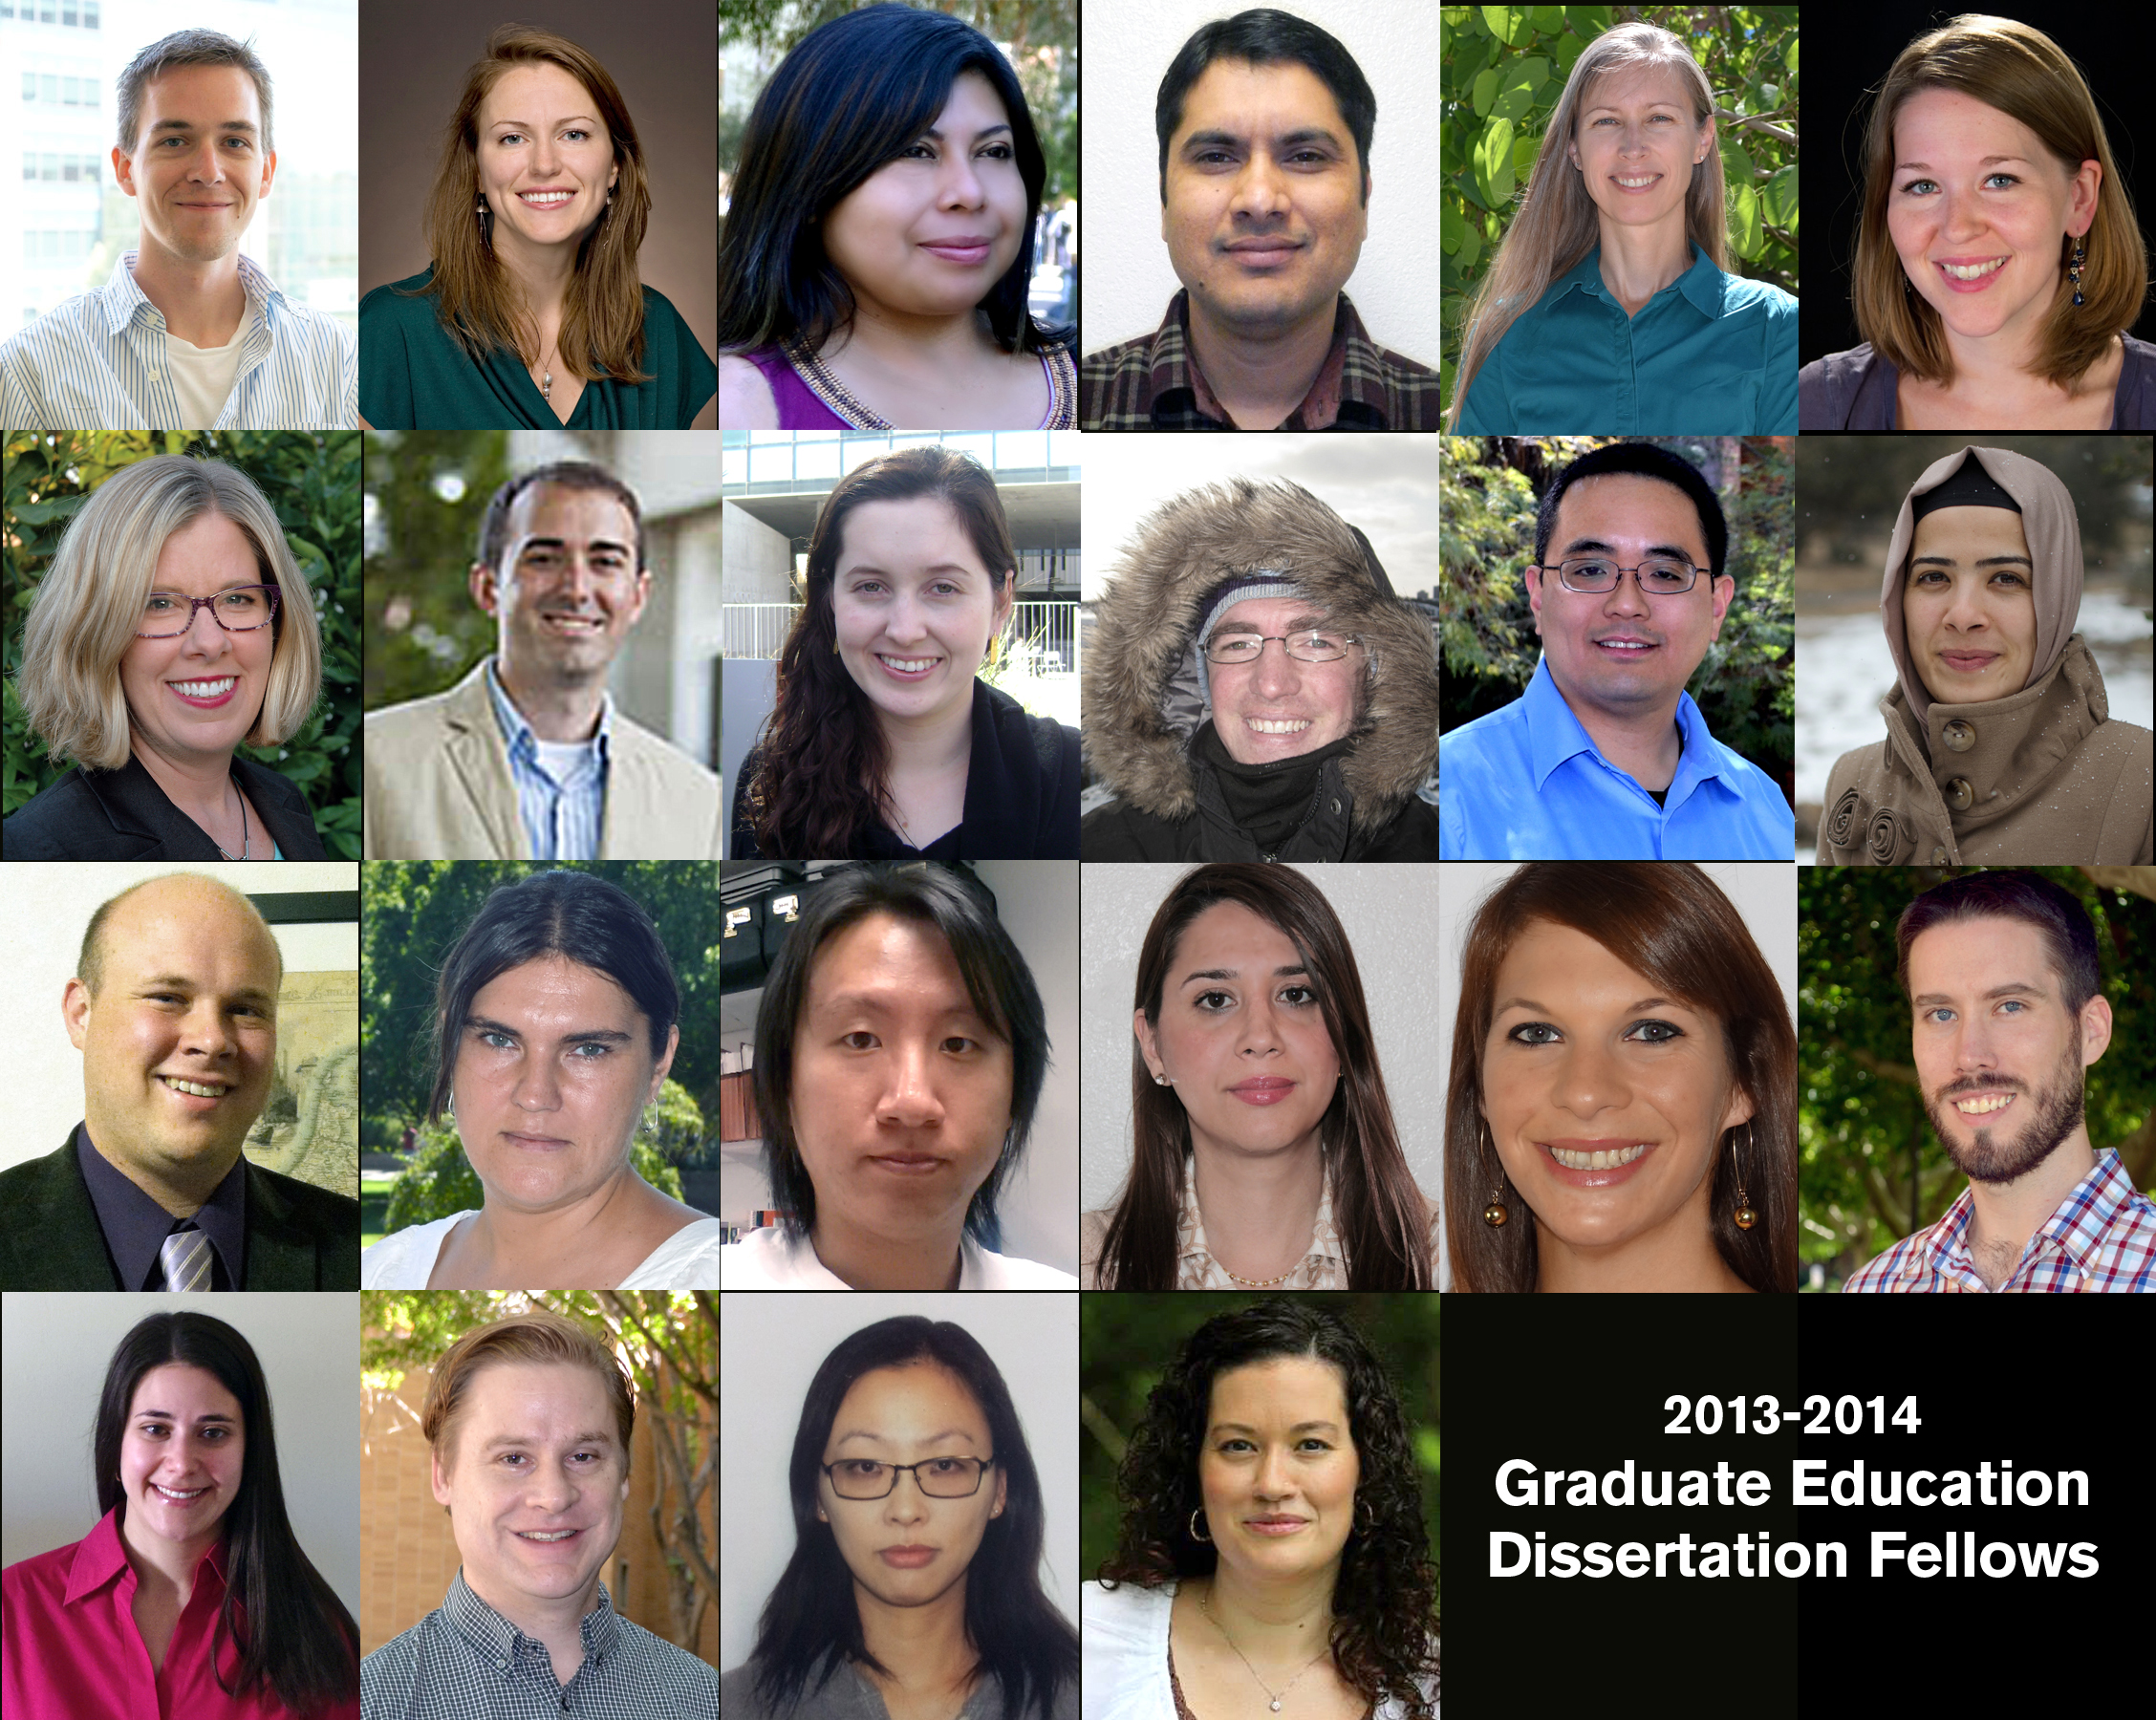 dissertation fellowships at asu